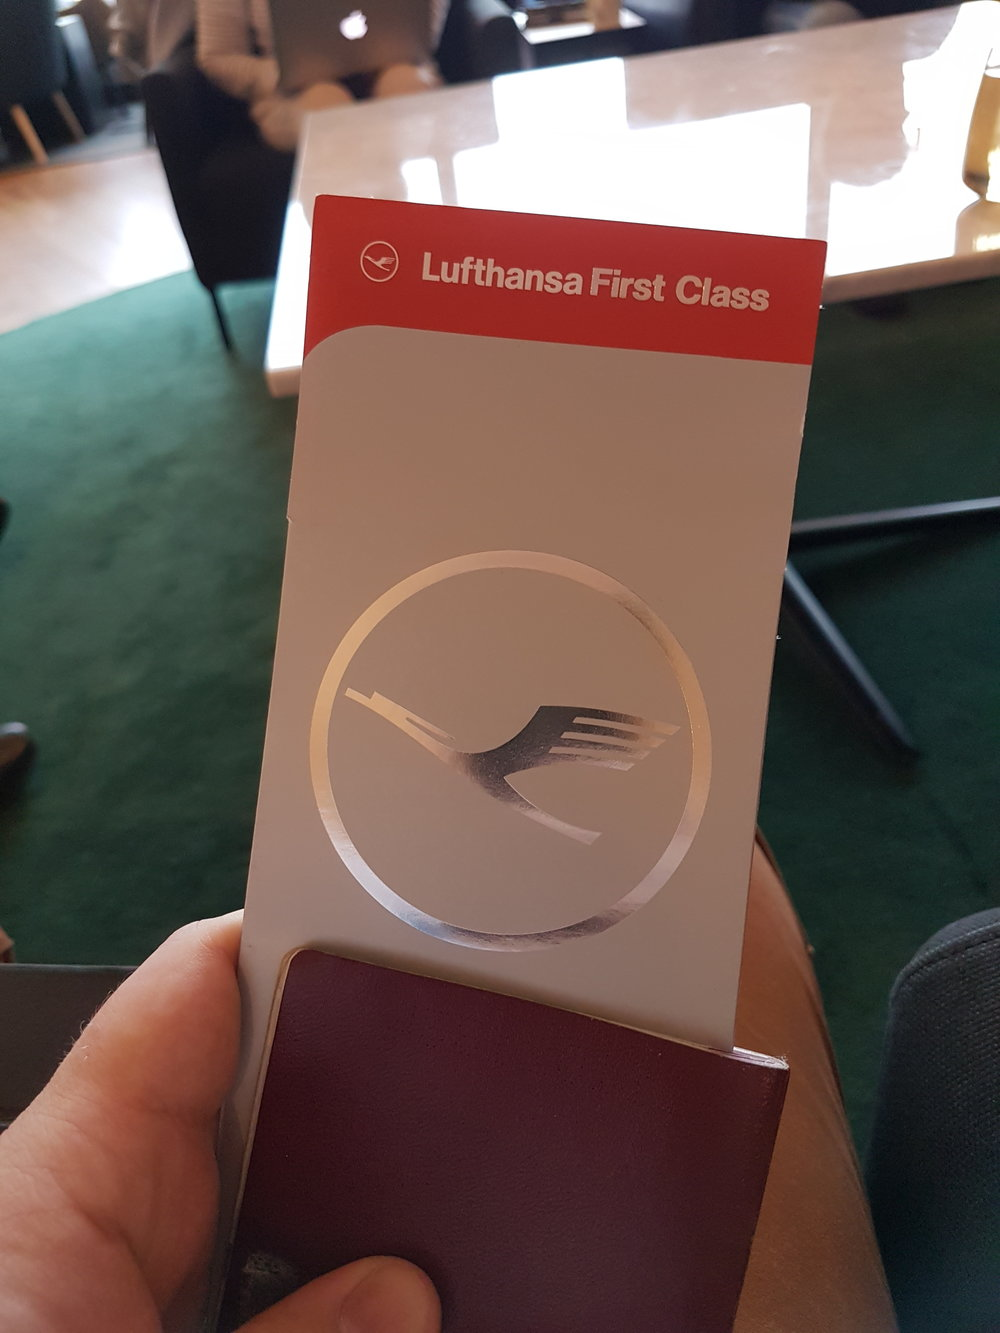 The boarding pass holder makes it easy for the Lufthansa staff to see that I am traveling First!